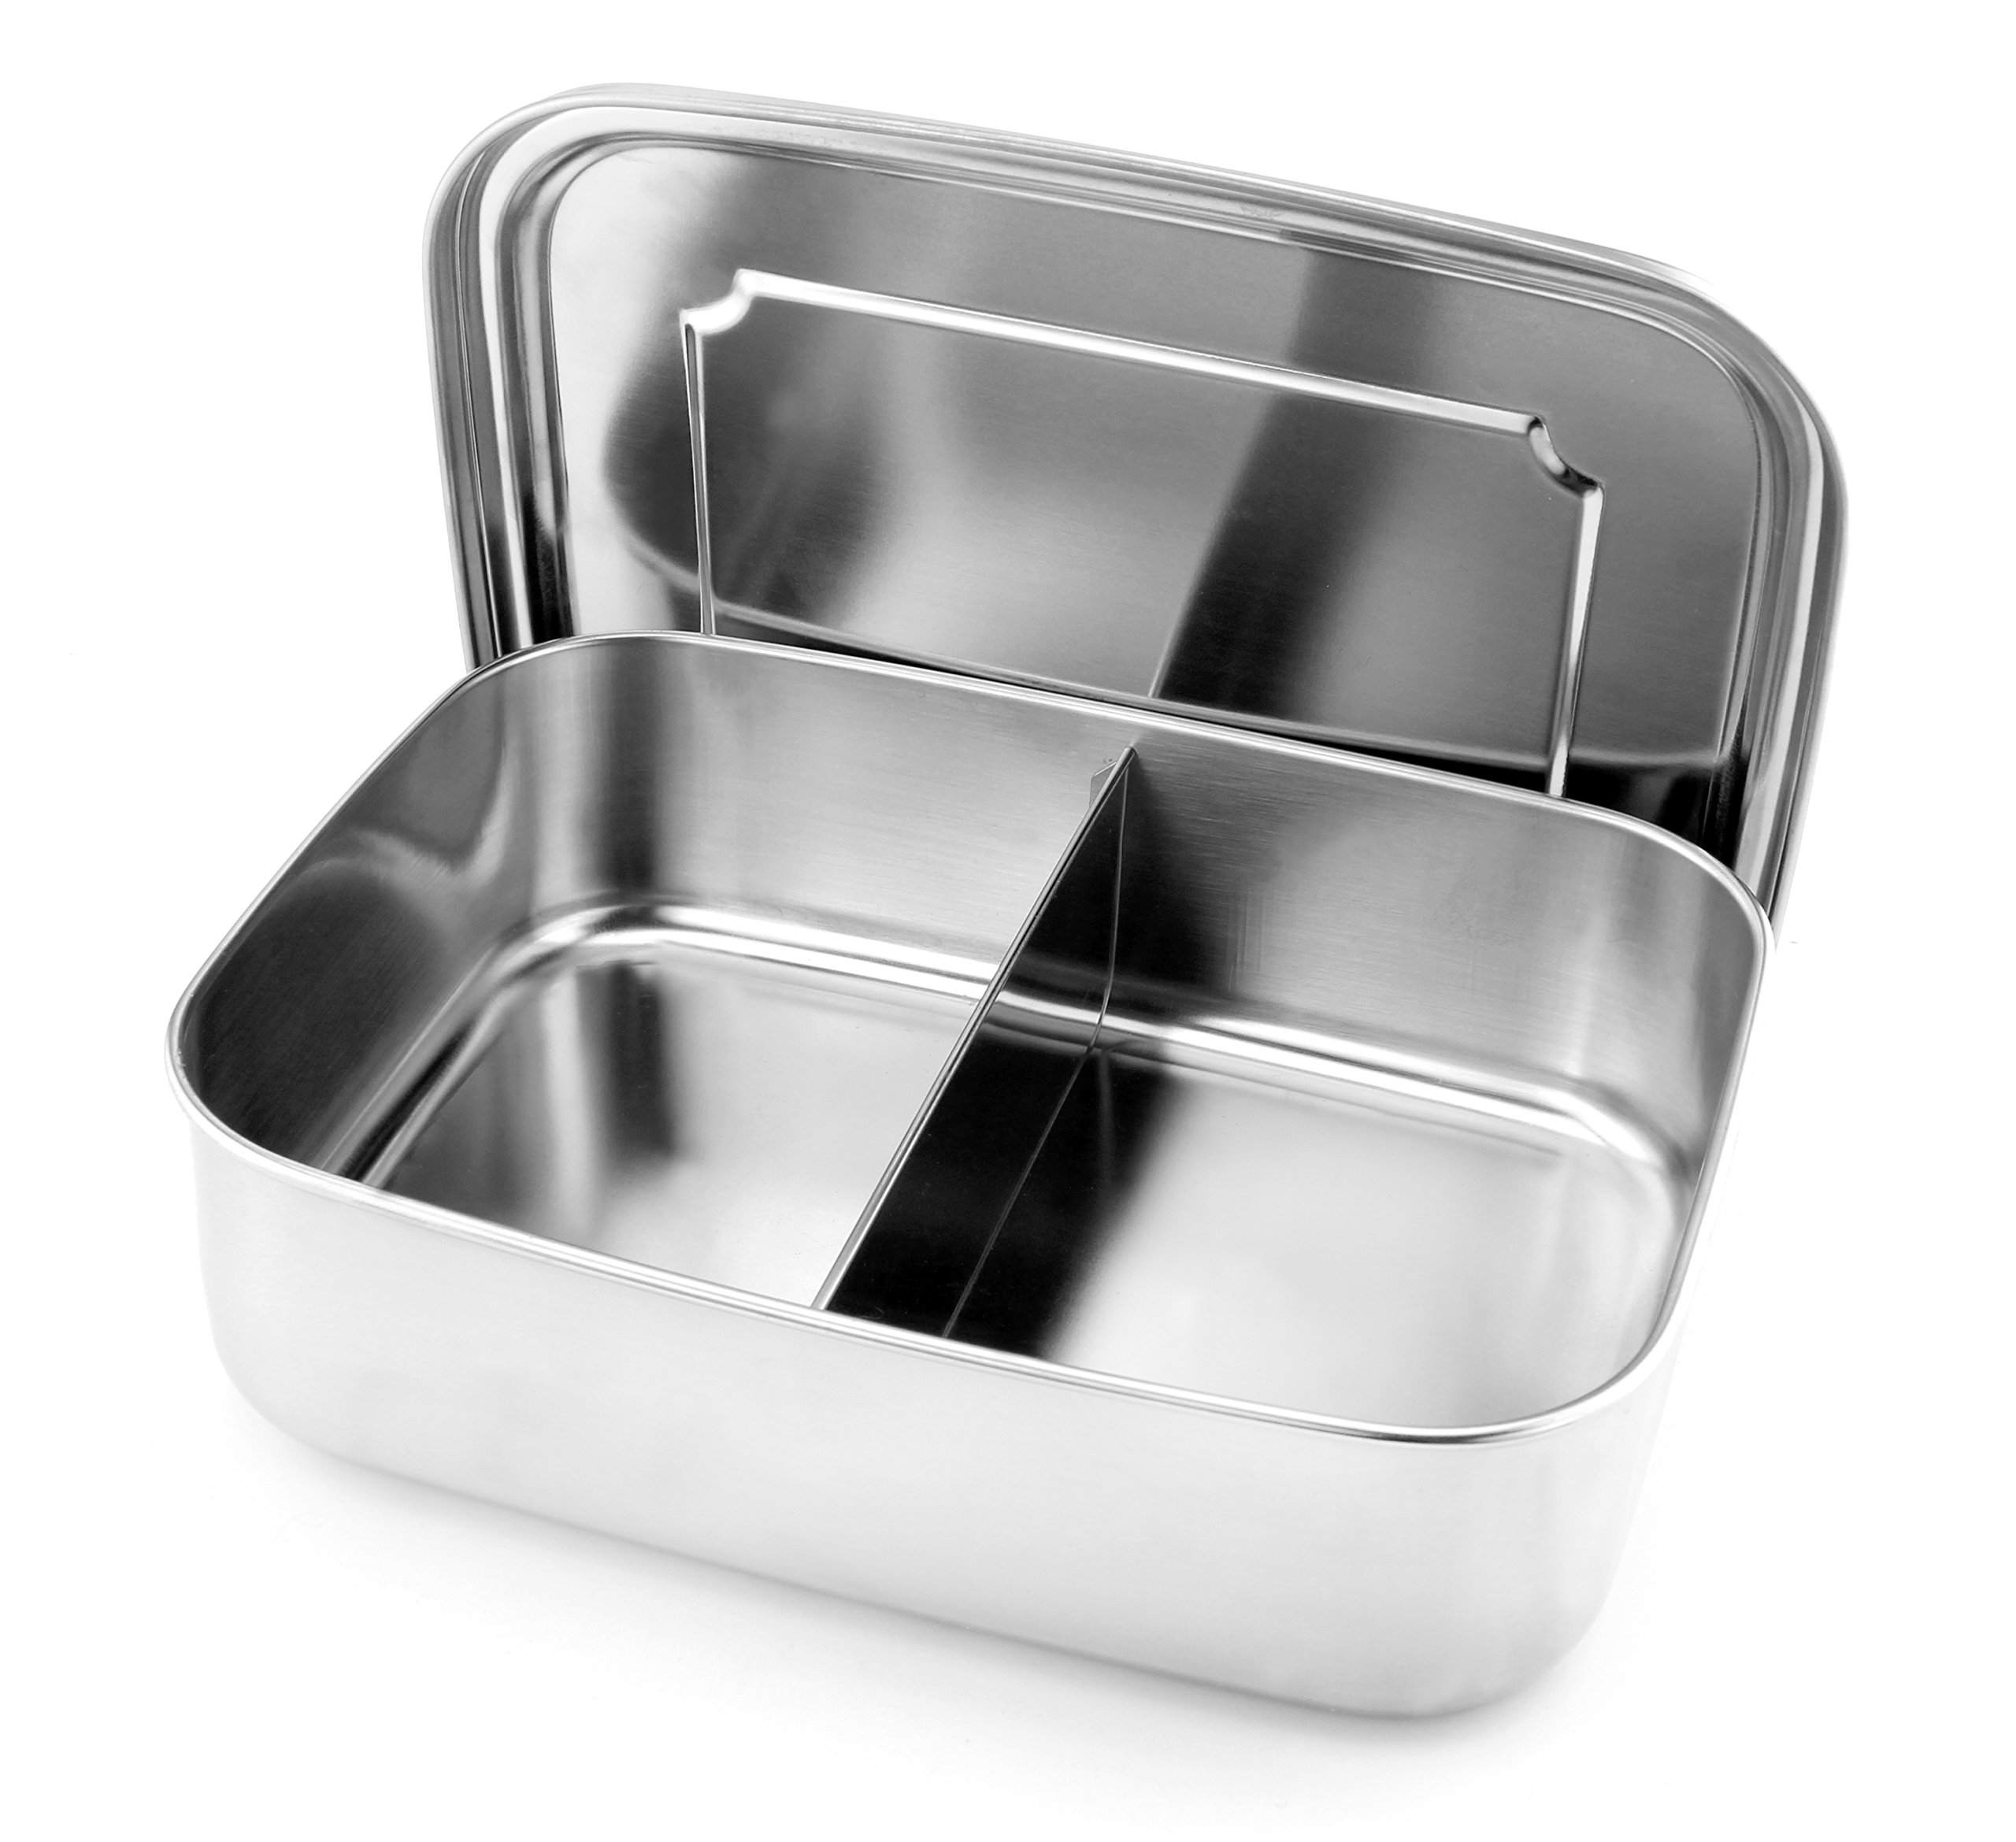 Stainless Steel Large 2-Compartment Bento Box, 9 x 7 x 2.75 Inches Lunch Box